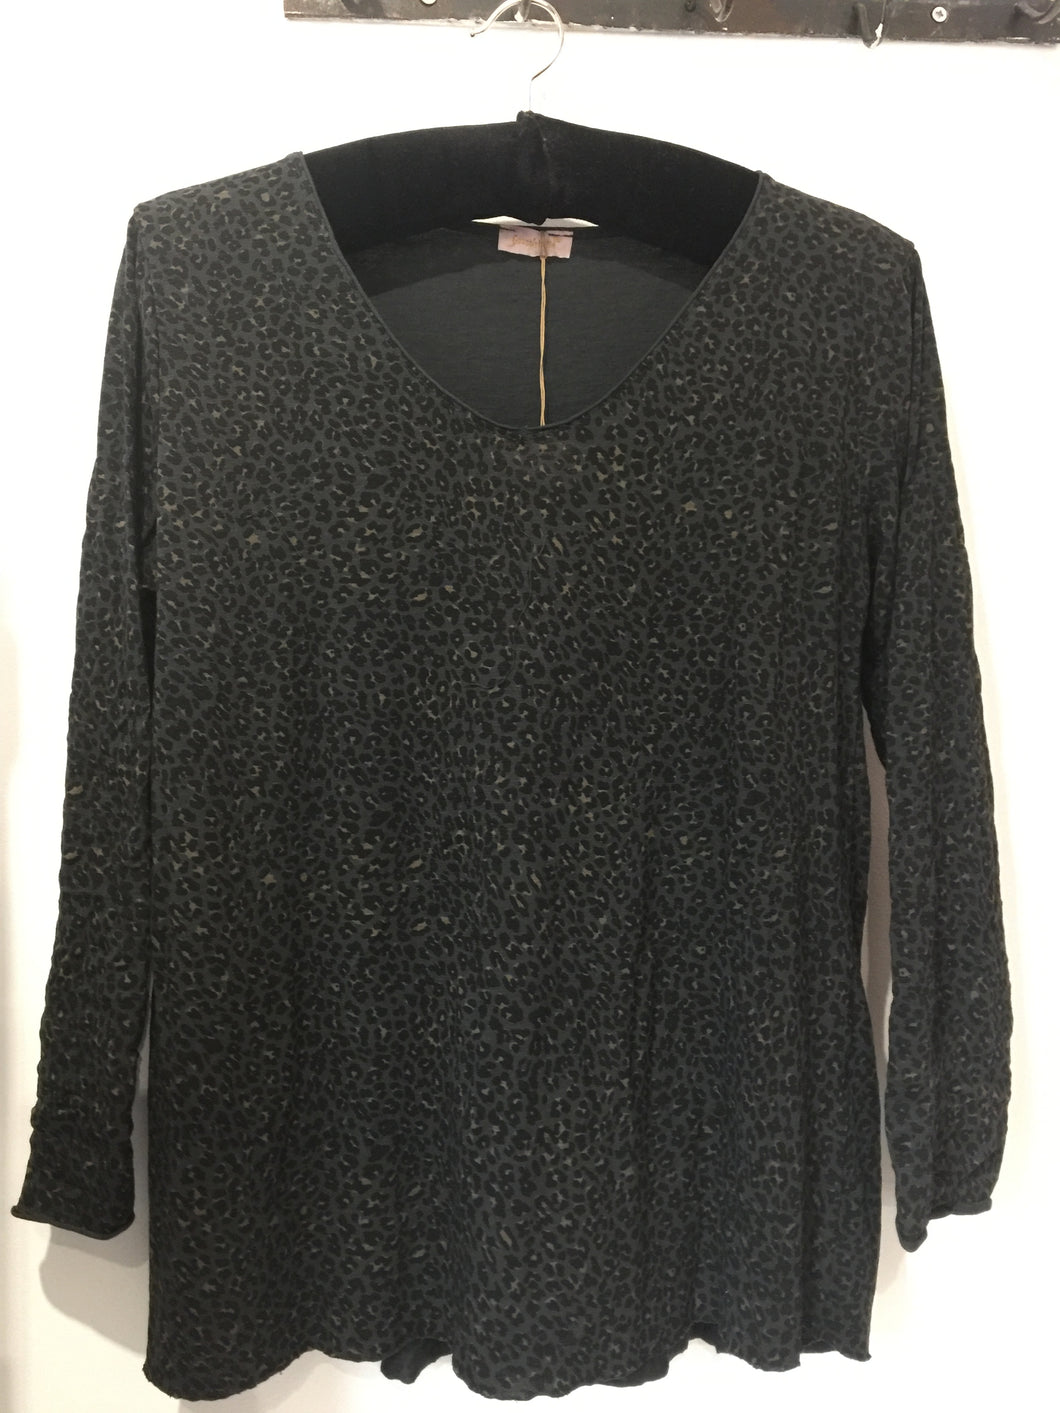 Goose Dark Grey Animal Print Top | The LBD Boutique & Trouser Shop